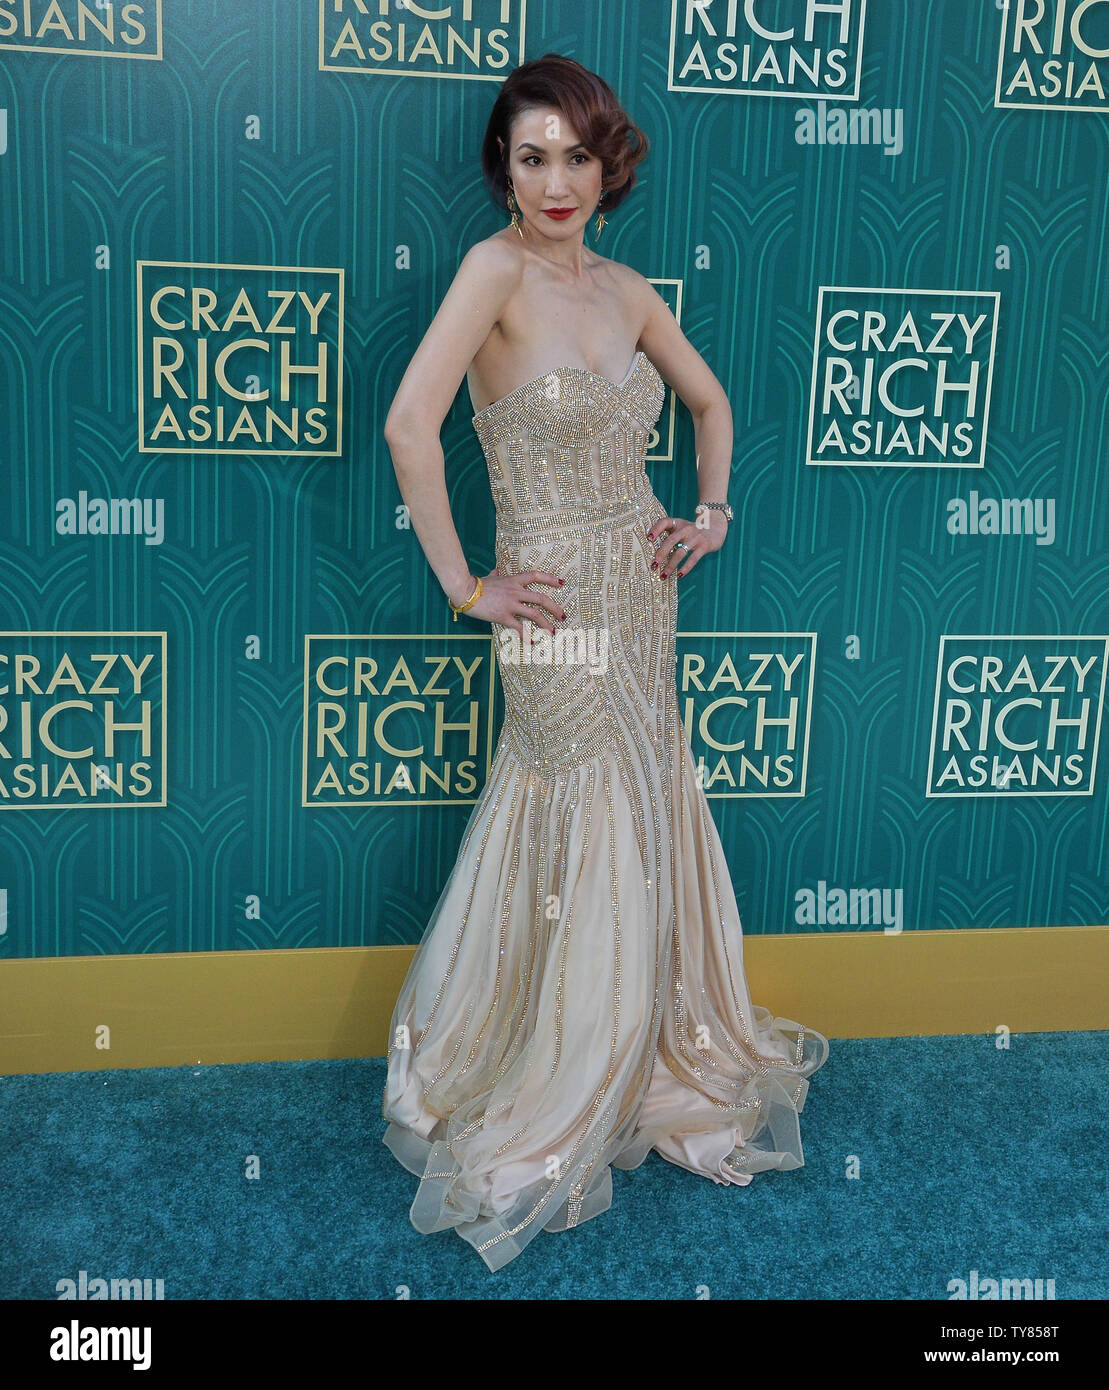 Cast member Amy Cheng attends the premiere of the motion picture comedy 'Crazy Rich Asians' at the TCL Chinese Theatre in the Hollywood section of Los Angeles on July 7, 2018. The story follows Rachel Chu (Wu), an American-born Chinese economics professor, who travels to her boyfriend Nick's (Henry Golding) hometown of Singapore for his best friend's wedding. Before long, his secret is out: Nick is from a family that is impossibly wealthy, he's perhaps the most eligible bachelor in Asia, and every single woman in his ultra-rarefied social class is incredibly jealous of Rachel and wants to brin - Stock Image